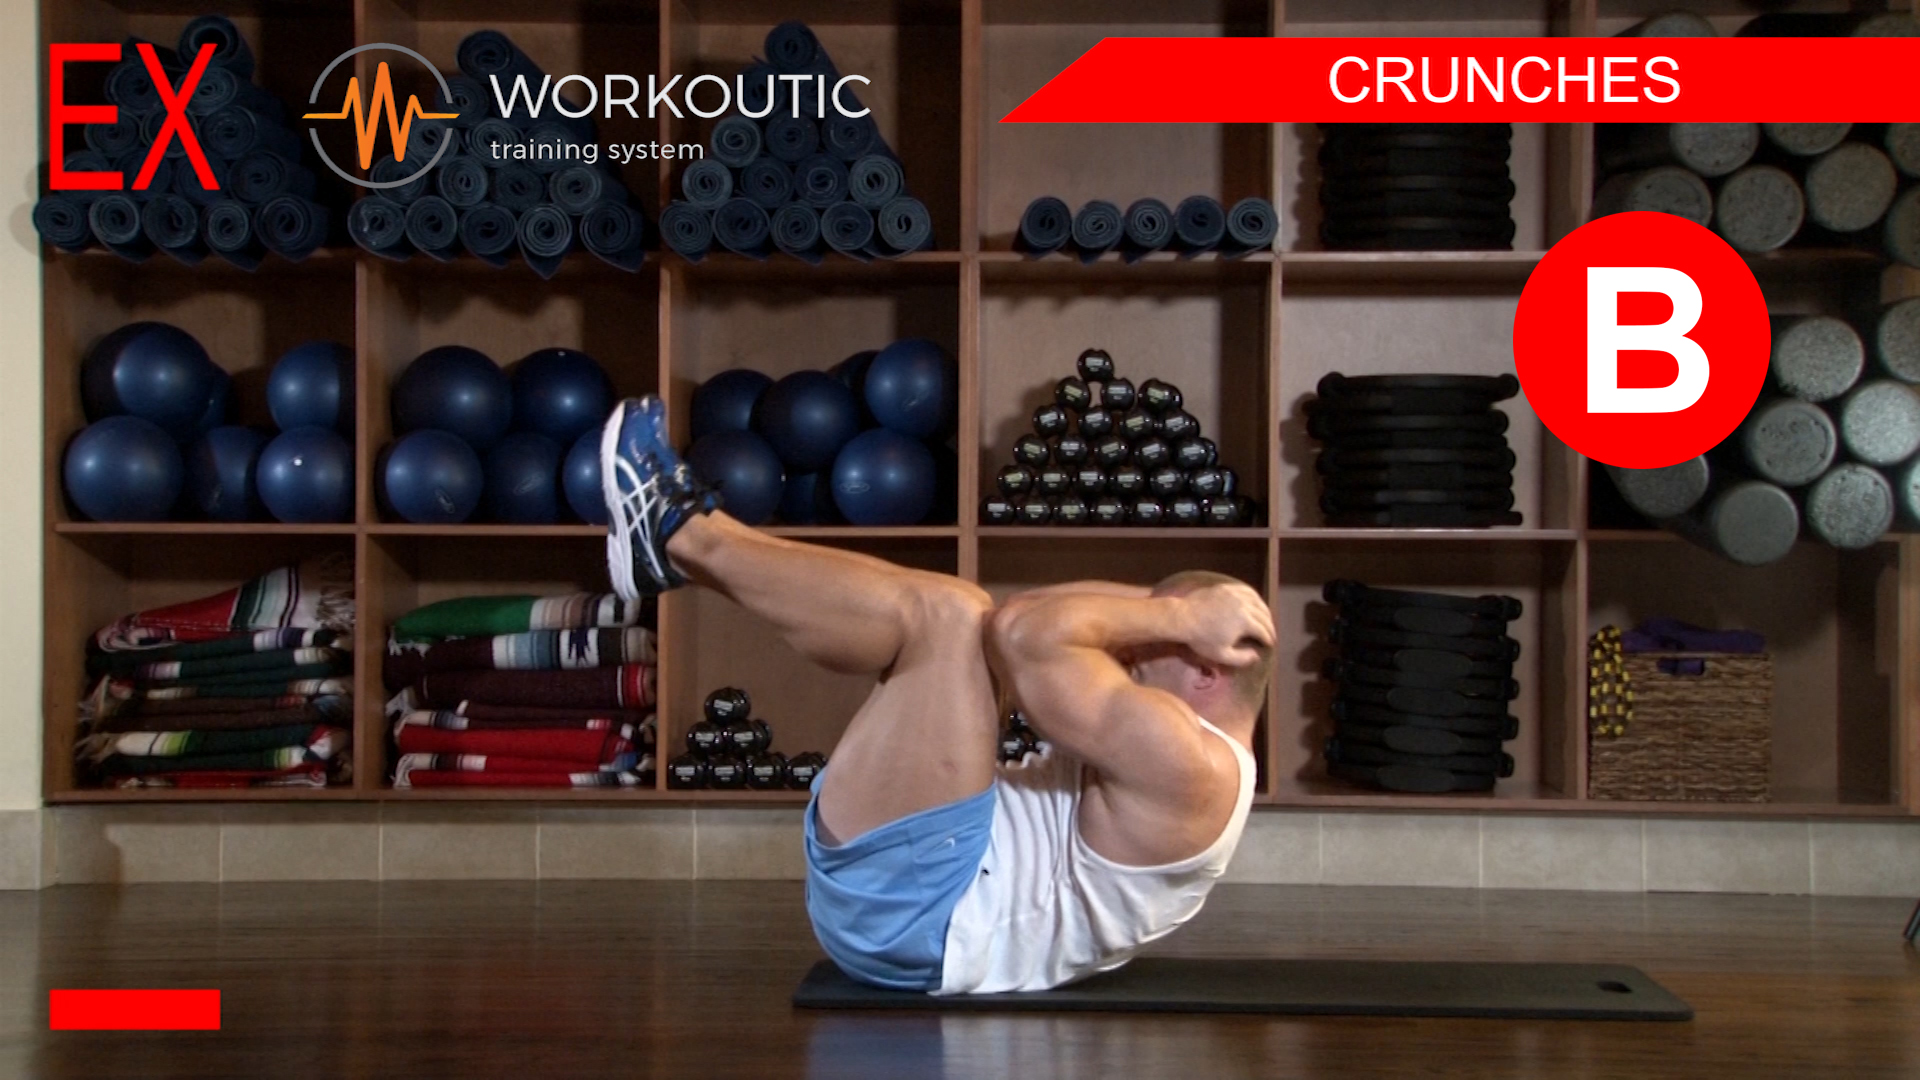 Abs Exercises - Workutic - 6 pack special - Crunches Exhale